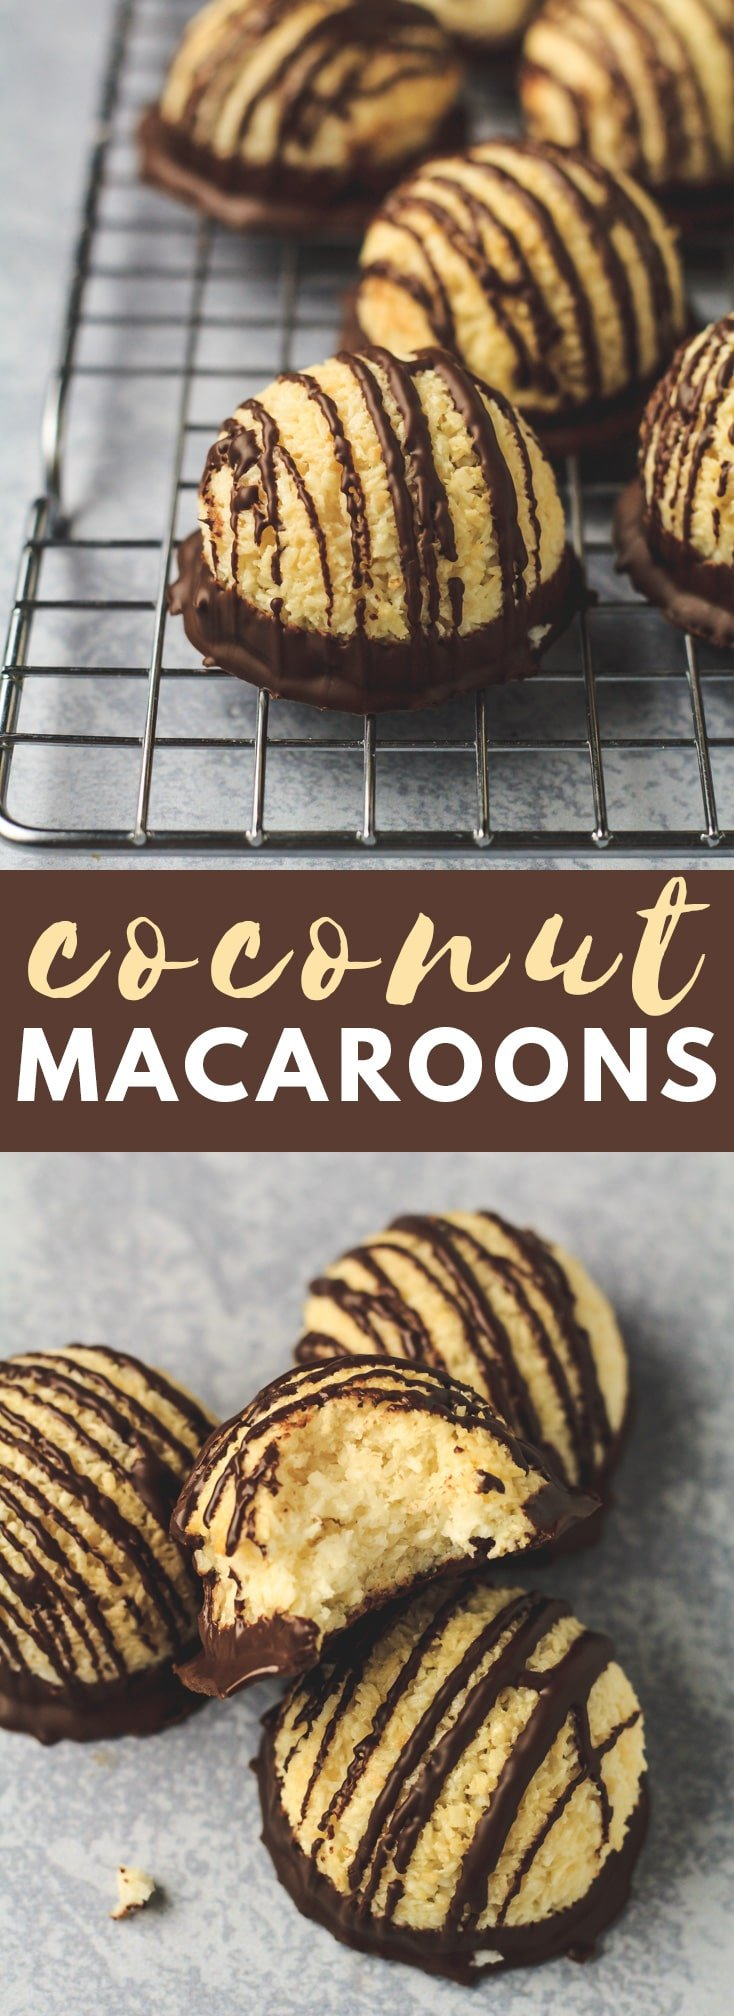 Coconut Macaroon - These deliciously chewy coconut macaroons are packed full of flavour, and only require 6 simple ingredients to make. The BEST easy coconut macaroons!